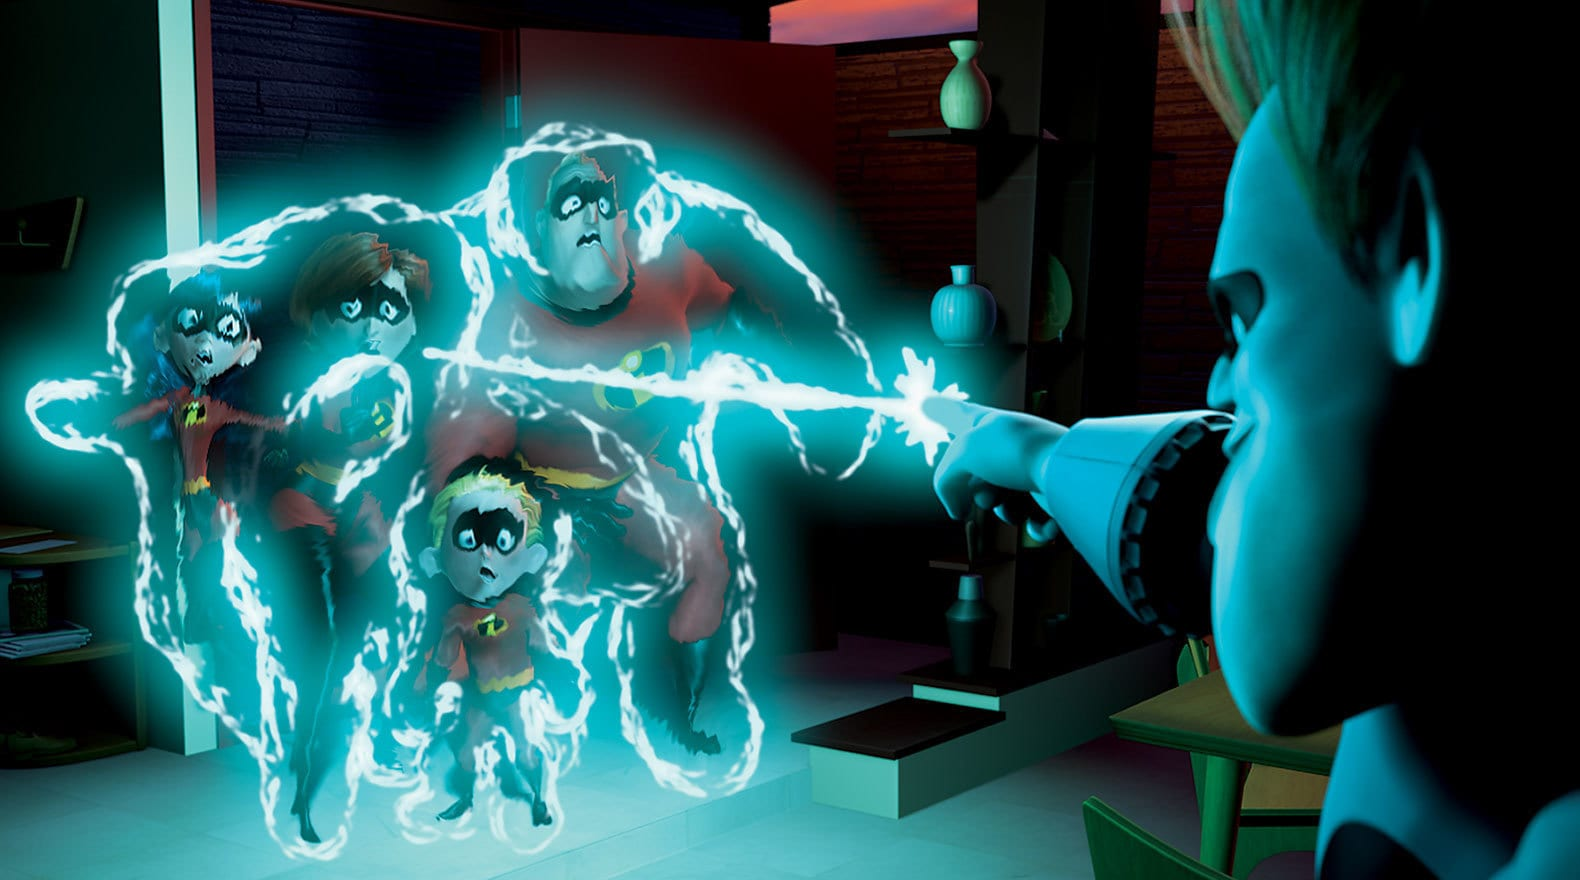 """Syndrome keeps The Incredibles at bay with his zero gravity tool in """"The Incredibles"""""""